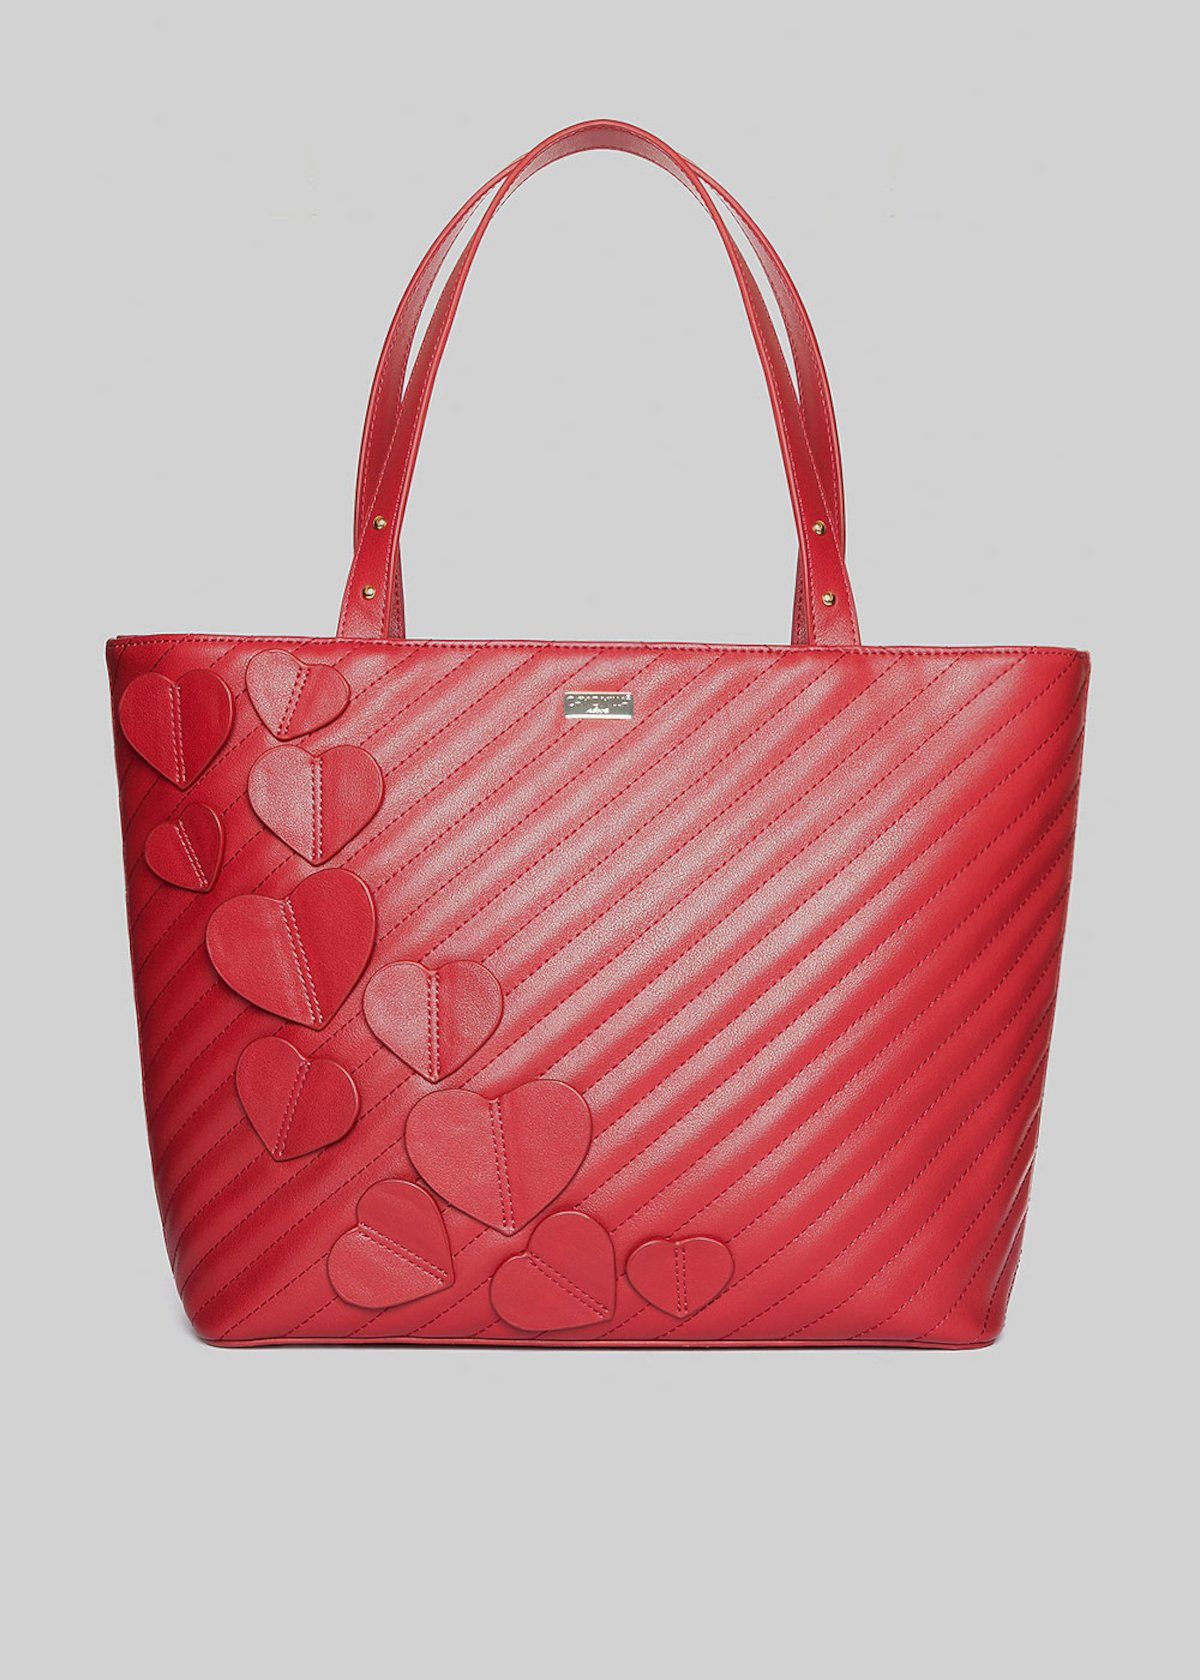 Shopping bag Baika con cuori applicati - Chili - Donna - Immagine categoria e9502277a20